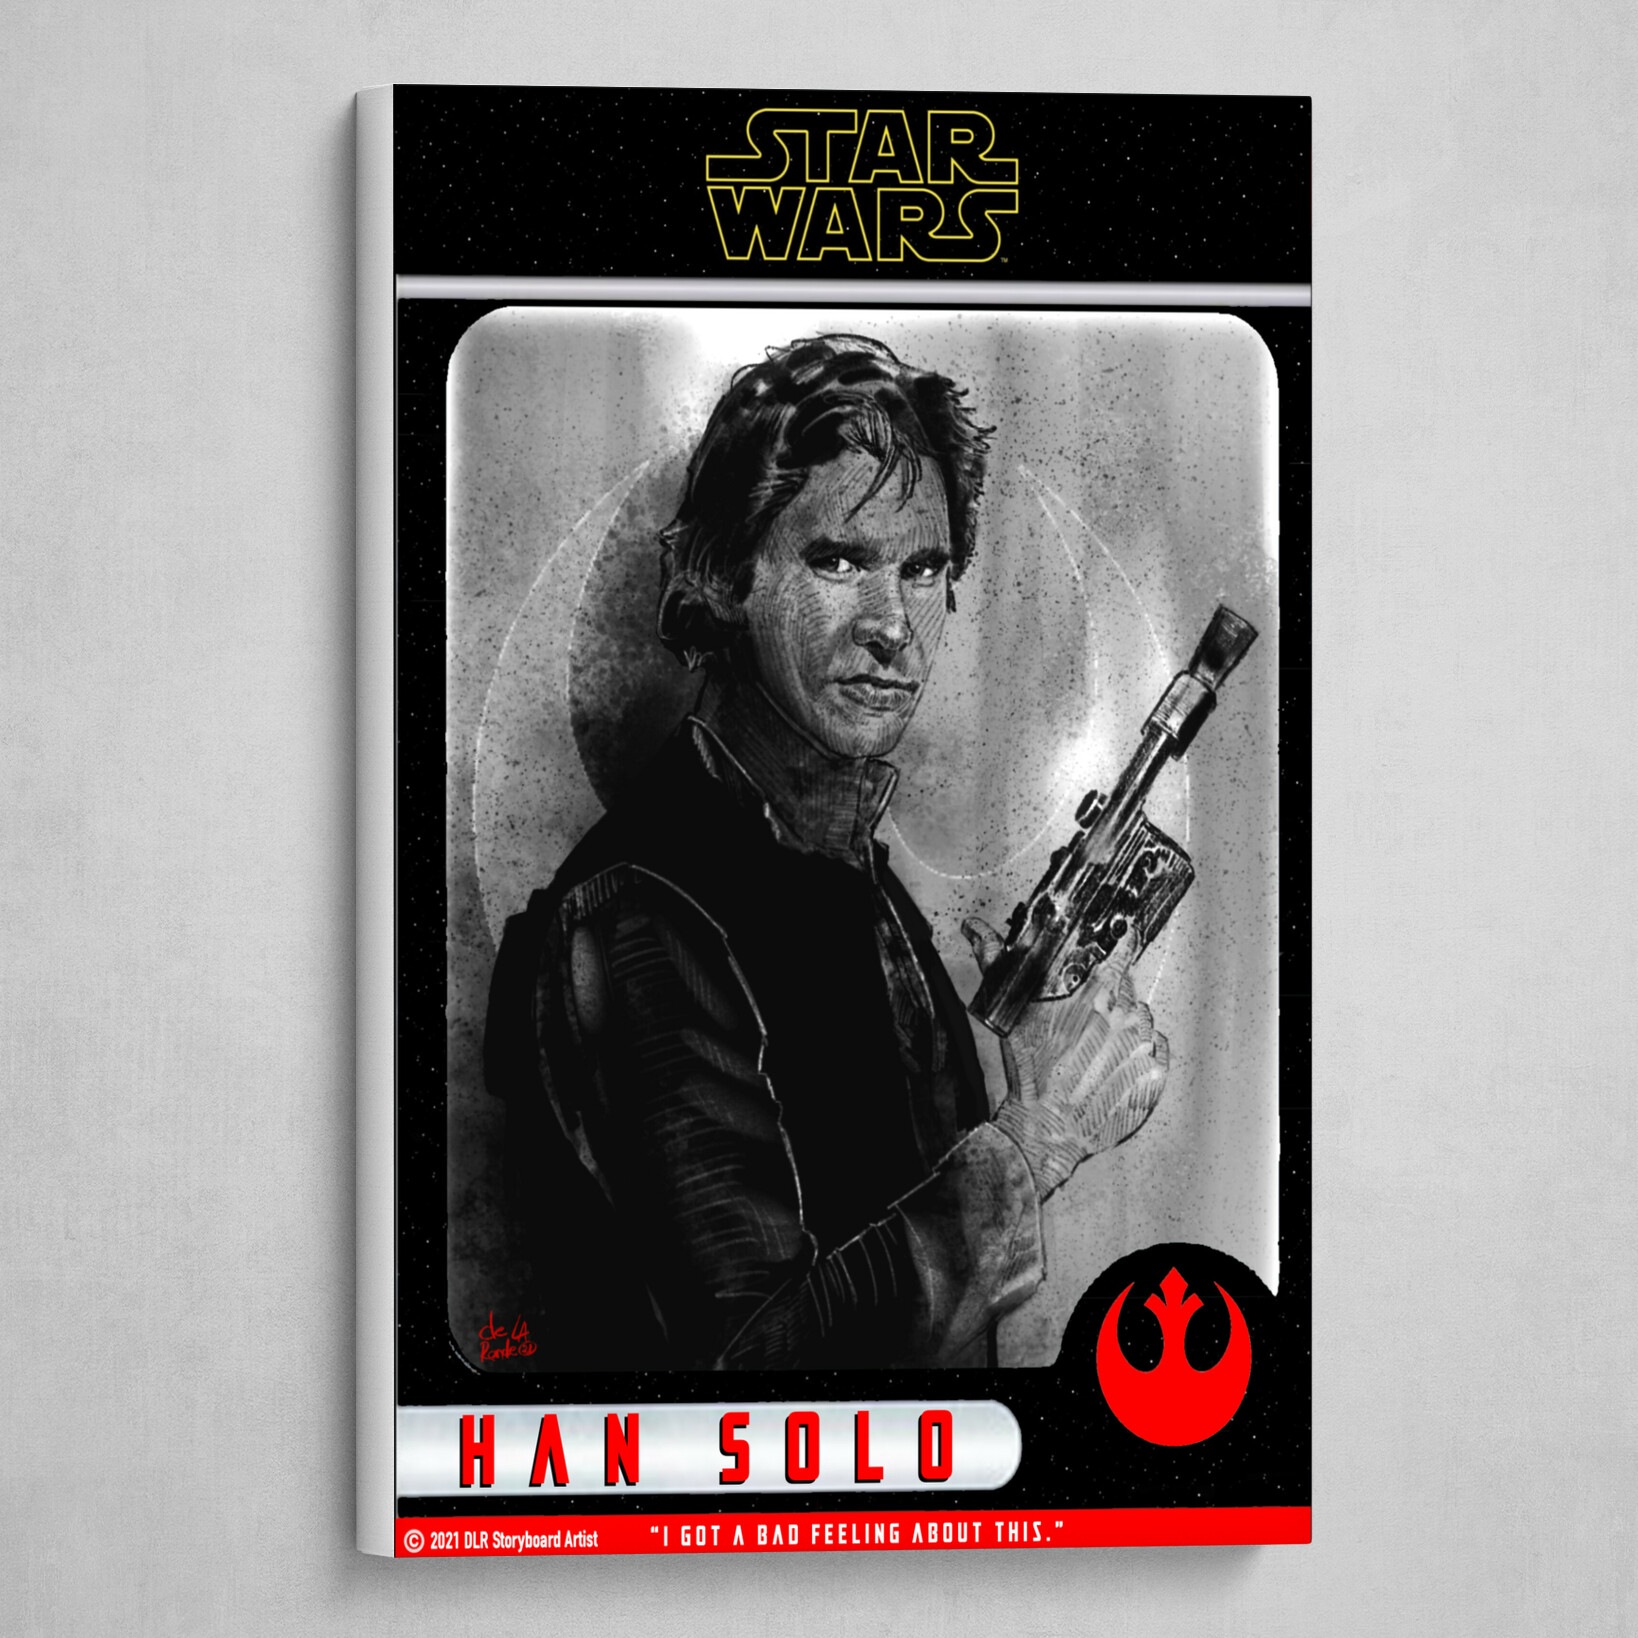 Han Solo Poster (Trading Card Style) B&W with Red and Yellow